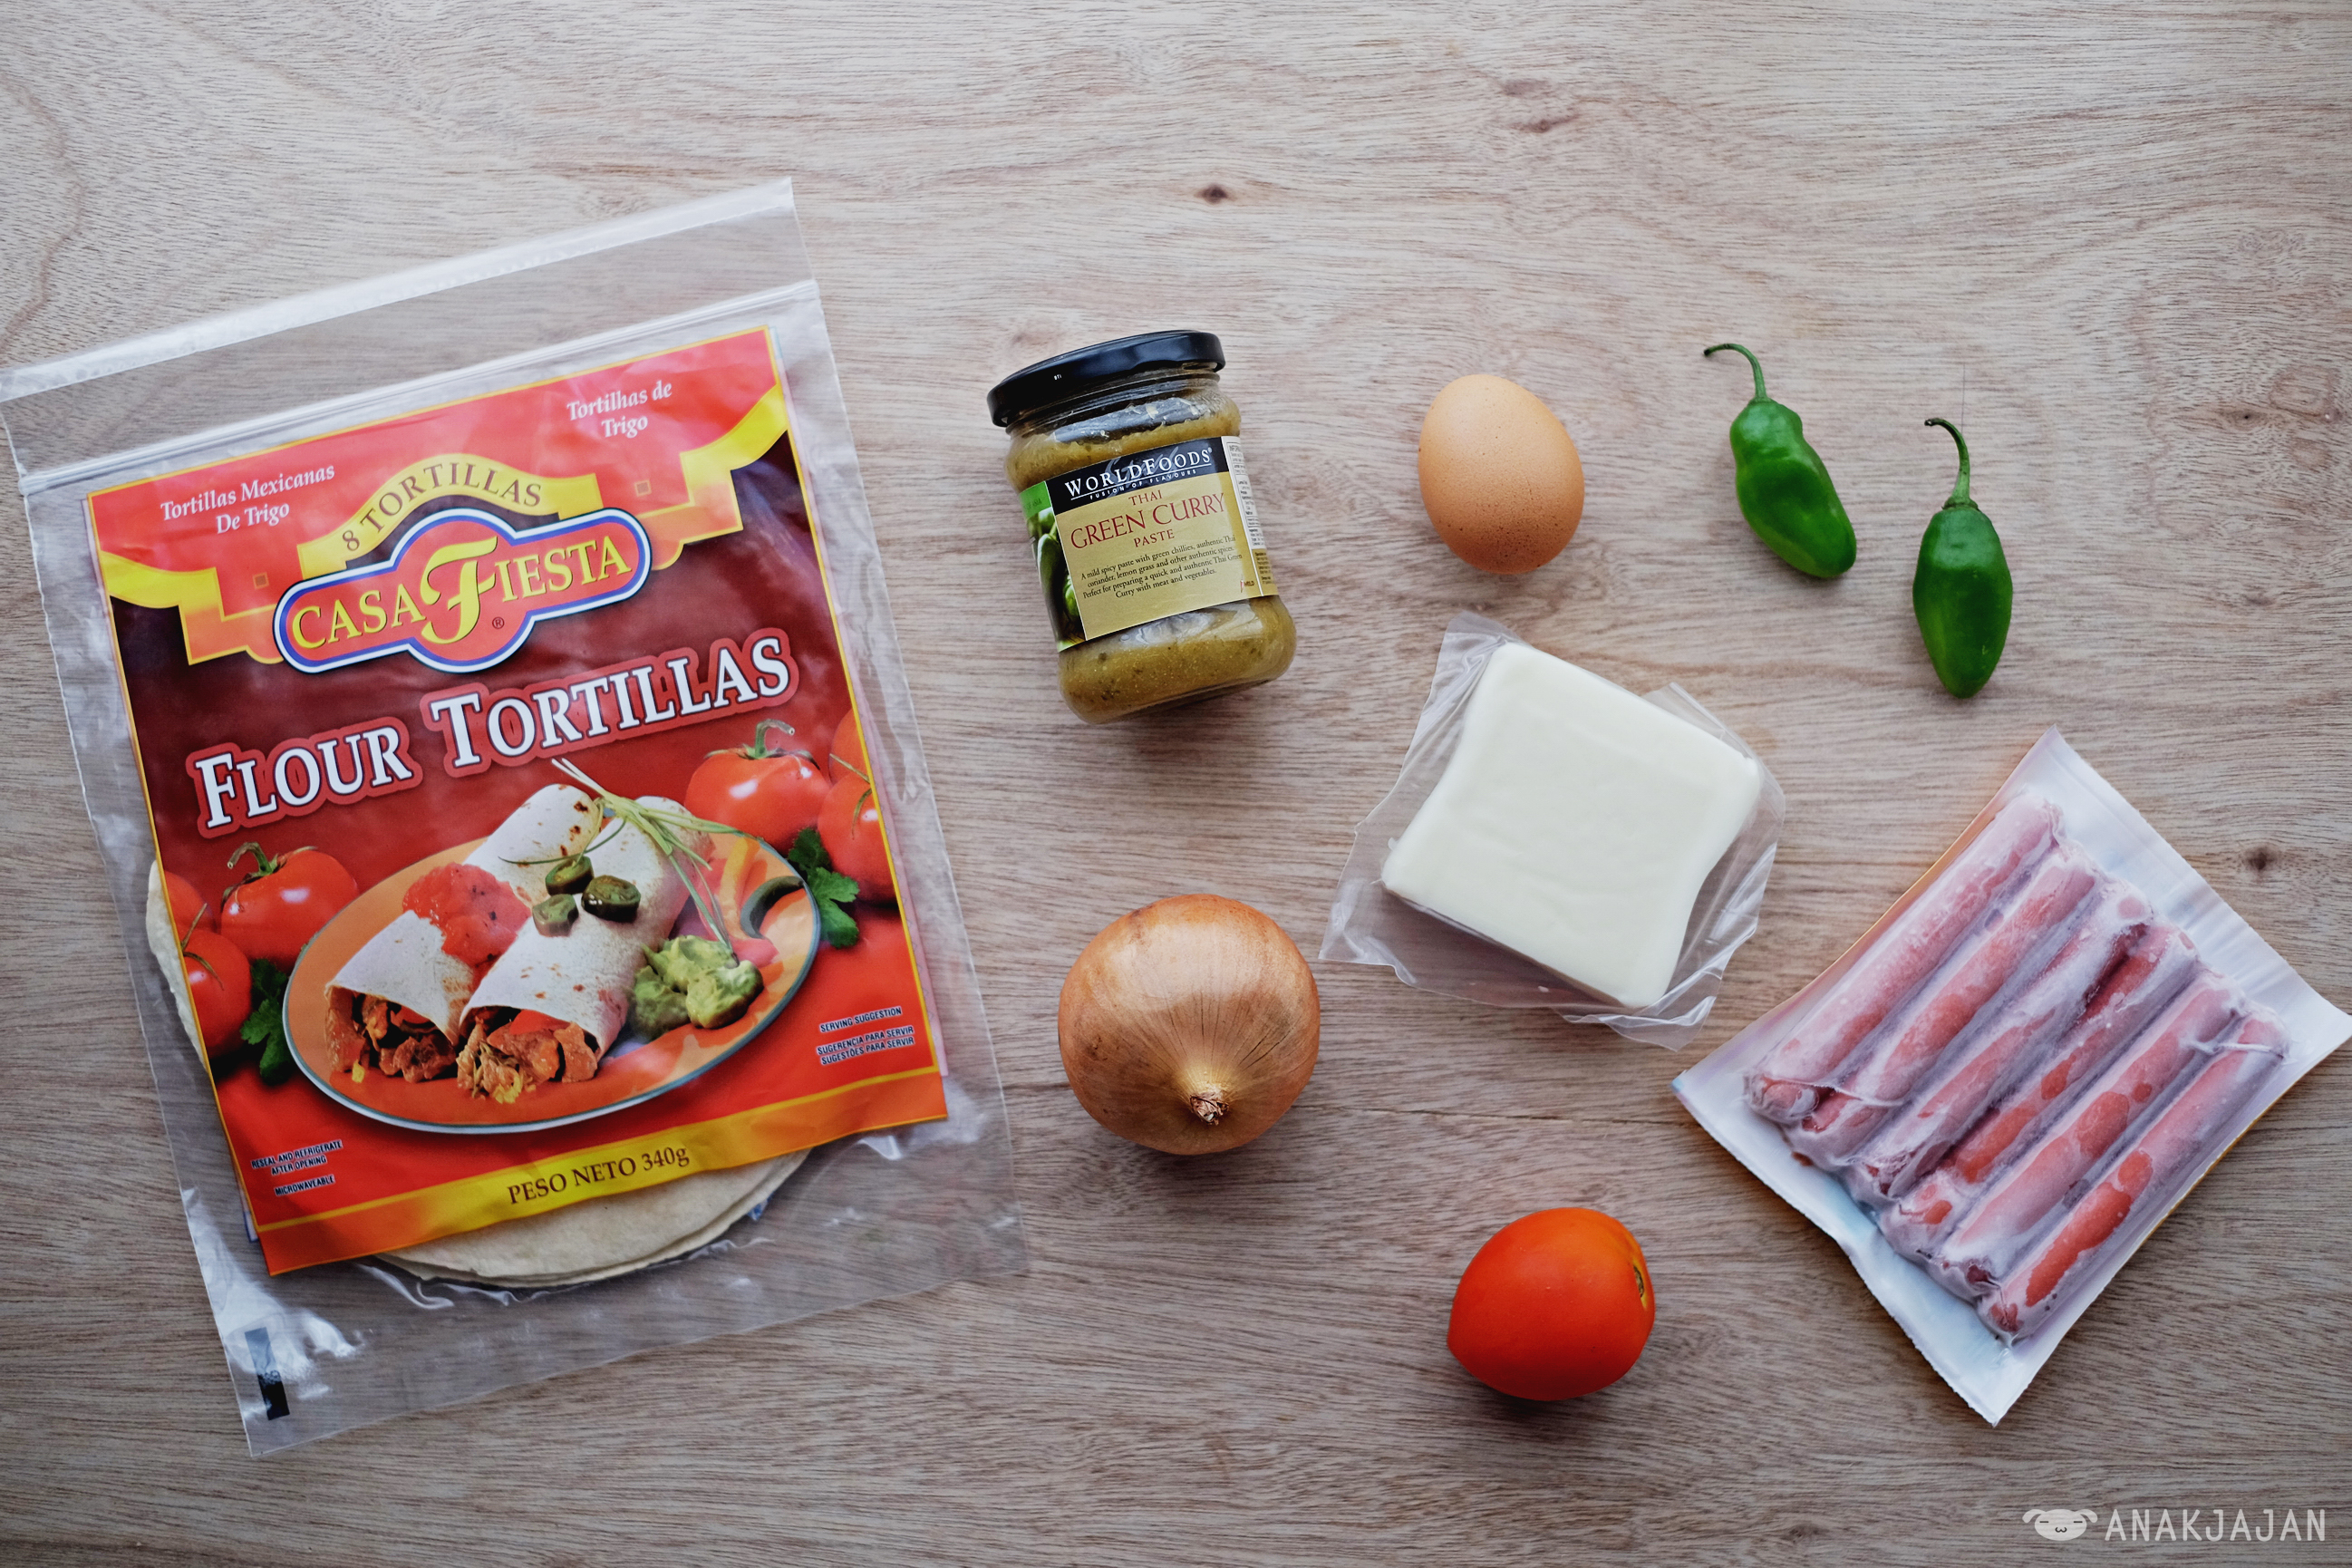 Recipe Easy Tortilla Pizza Durian Cup 75gr Mozarella Cheese Grated 3 Tbspn Worldfoods Thai Green Curry Paste 1 Tomato 2 Jalapeno Chili 30 Gr Onion Sliced 60 Sausage